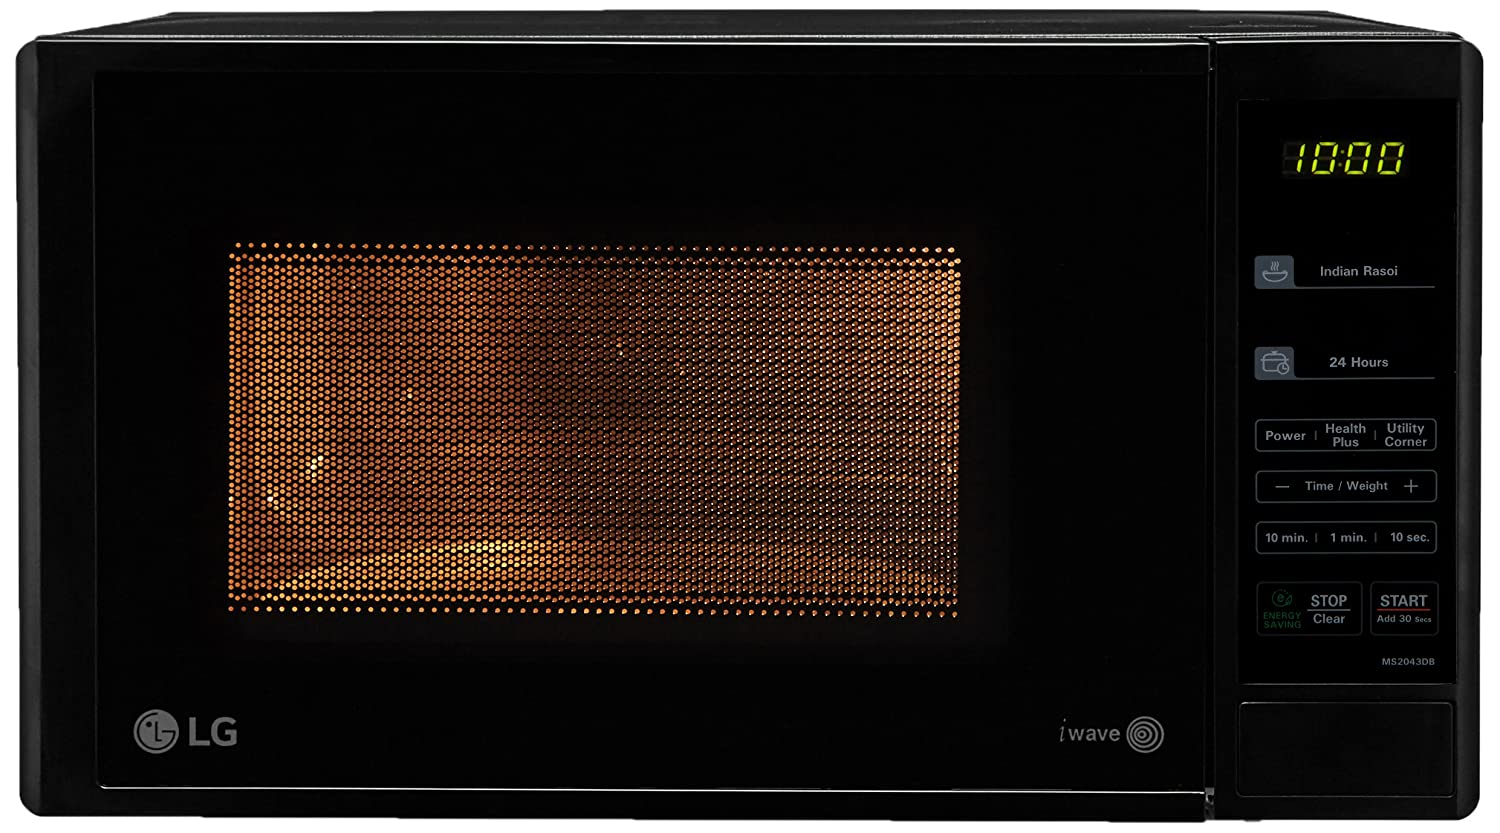 LG 20L Solo Microwave Oven